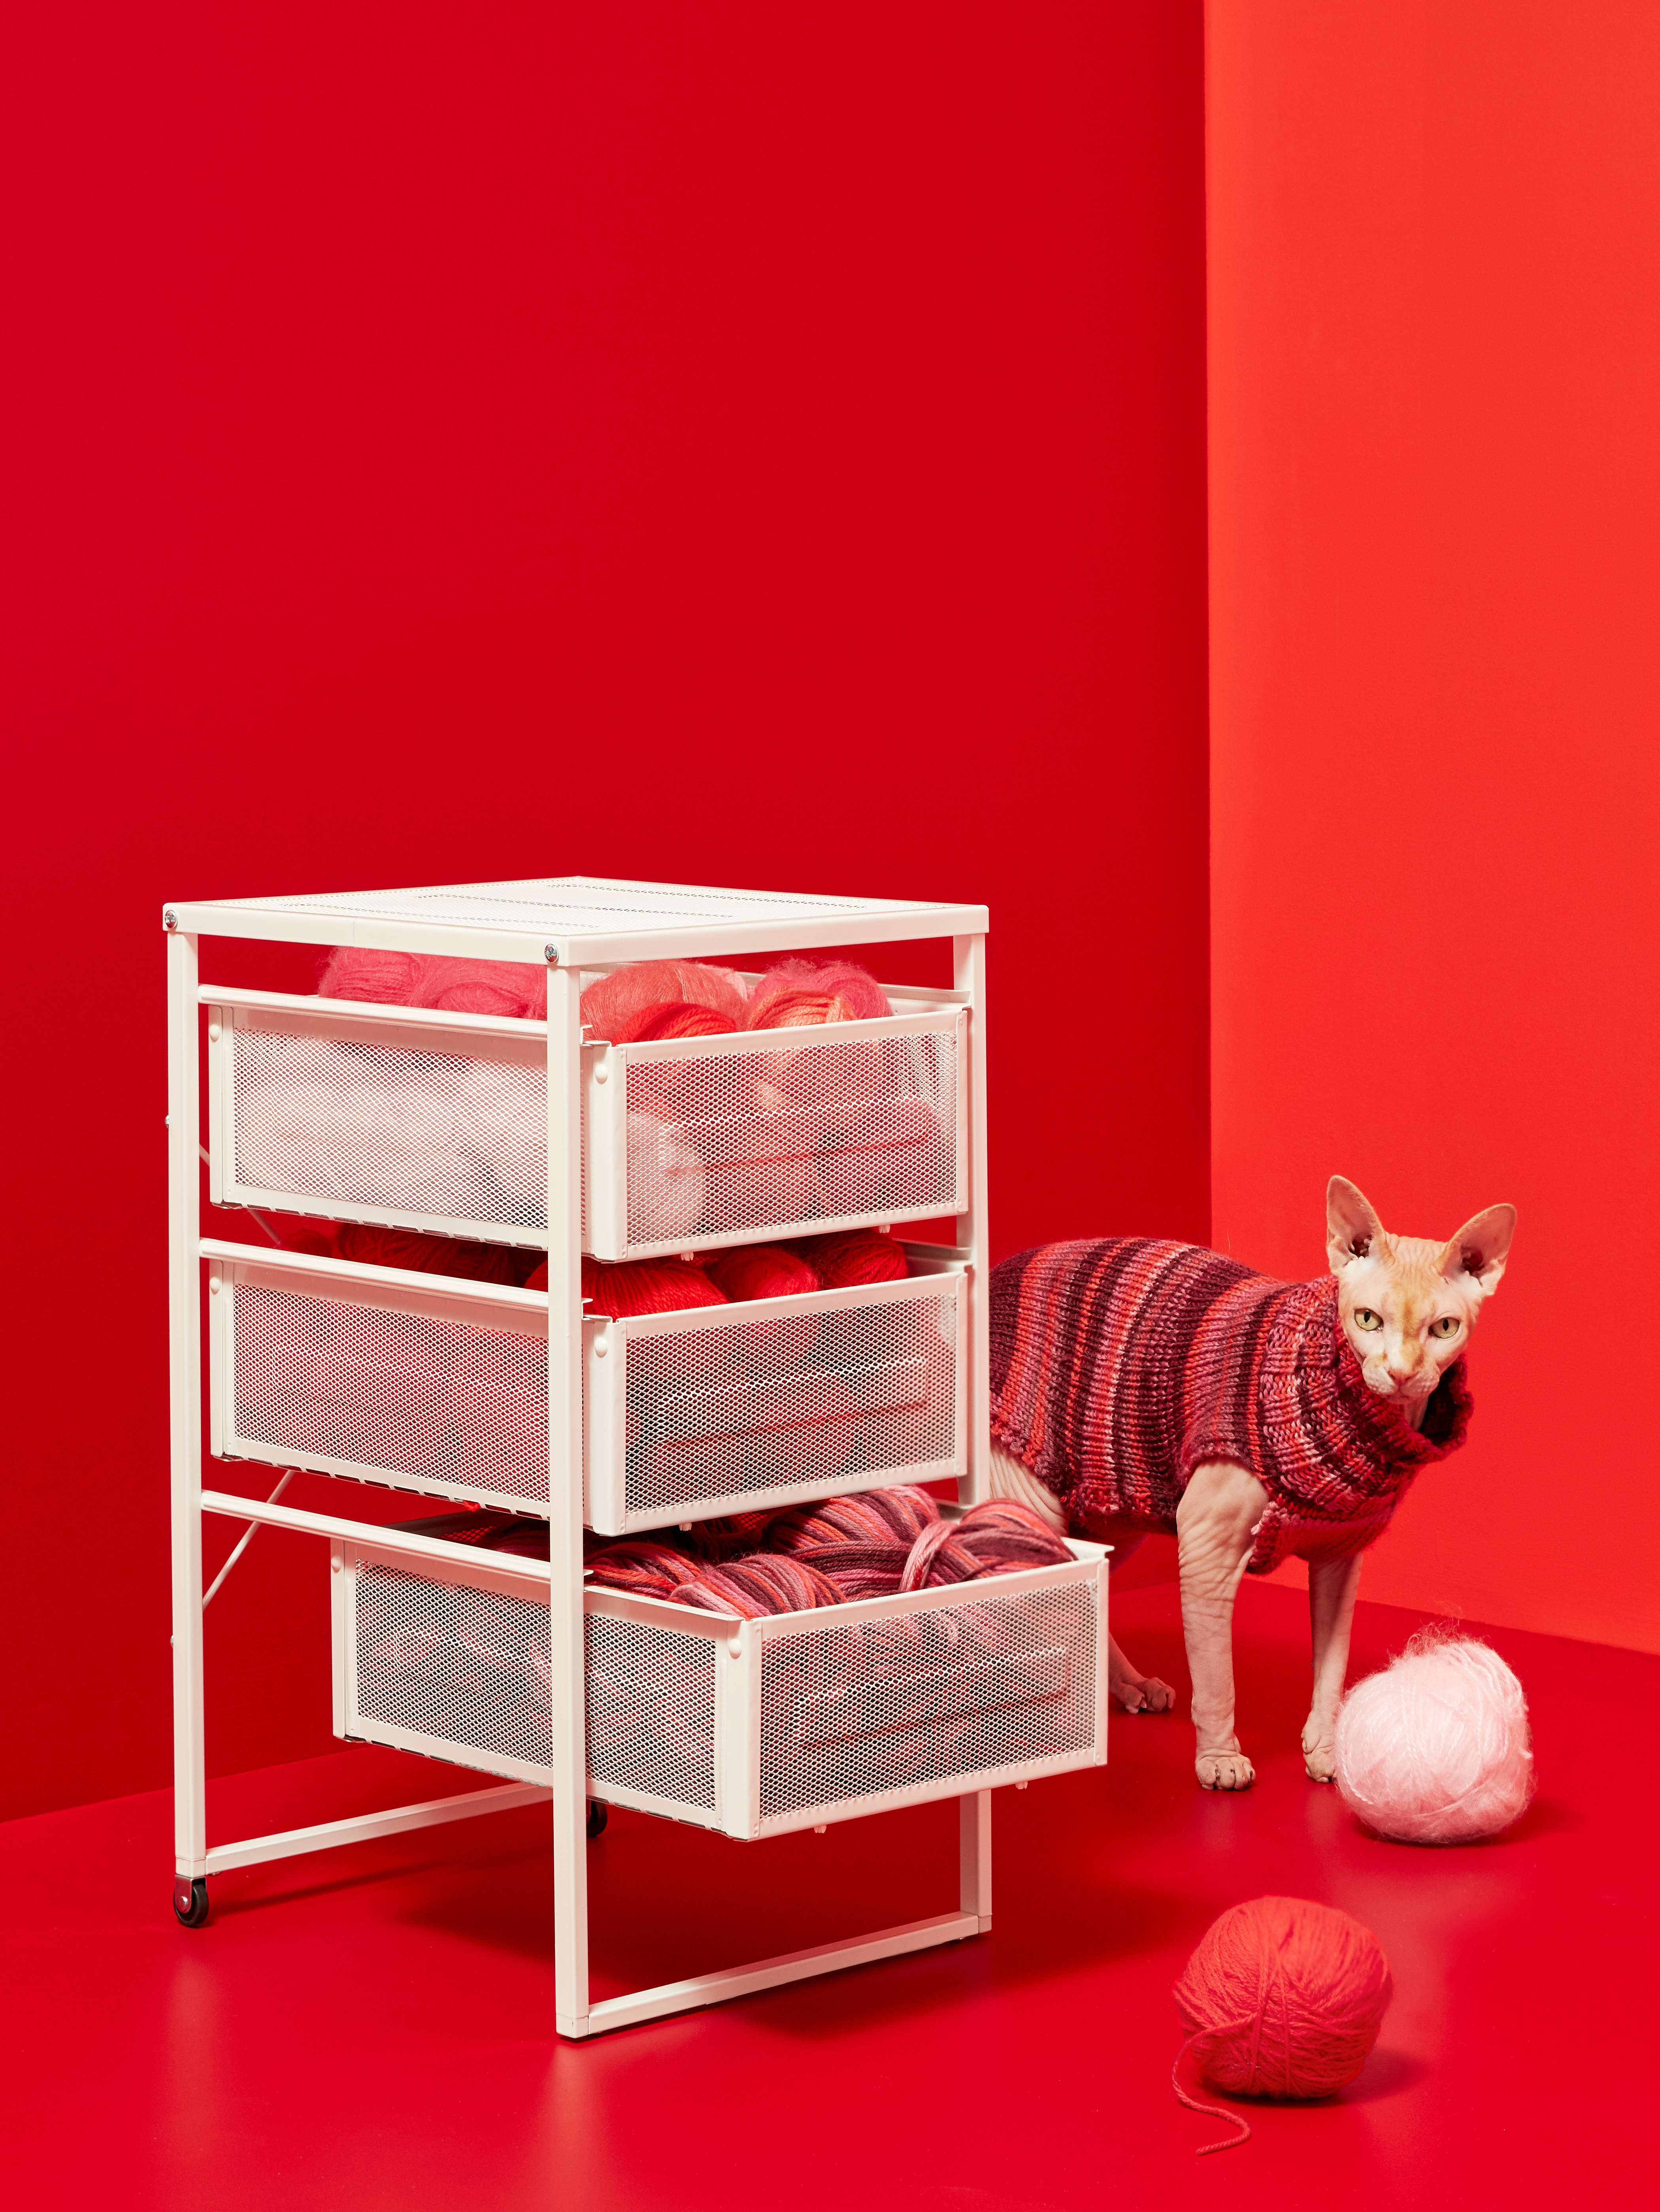 Modern room painted in red with drawer unit on two wheels with three semi-transparent plastic drawers with yarn balls inside next to cat.